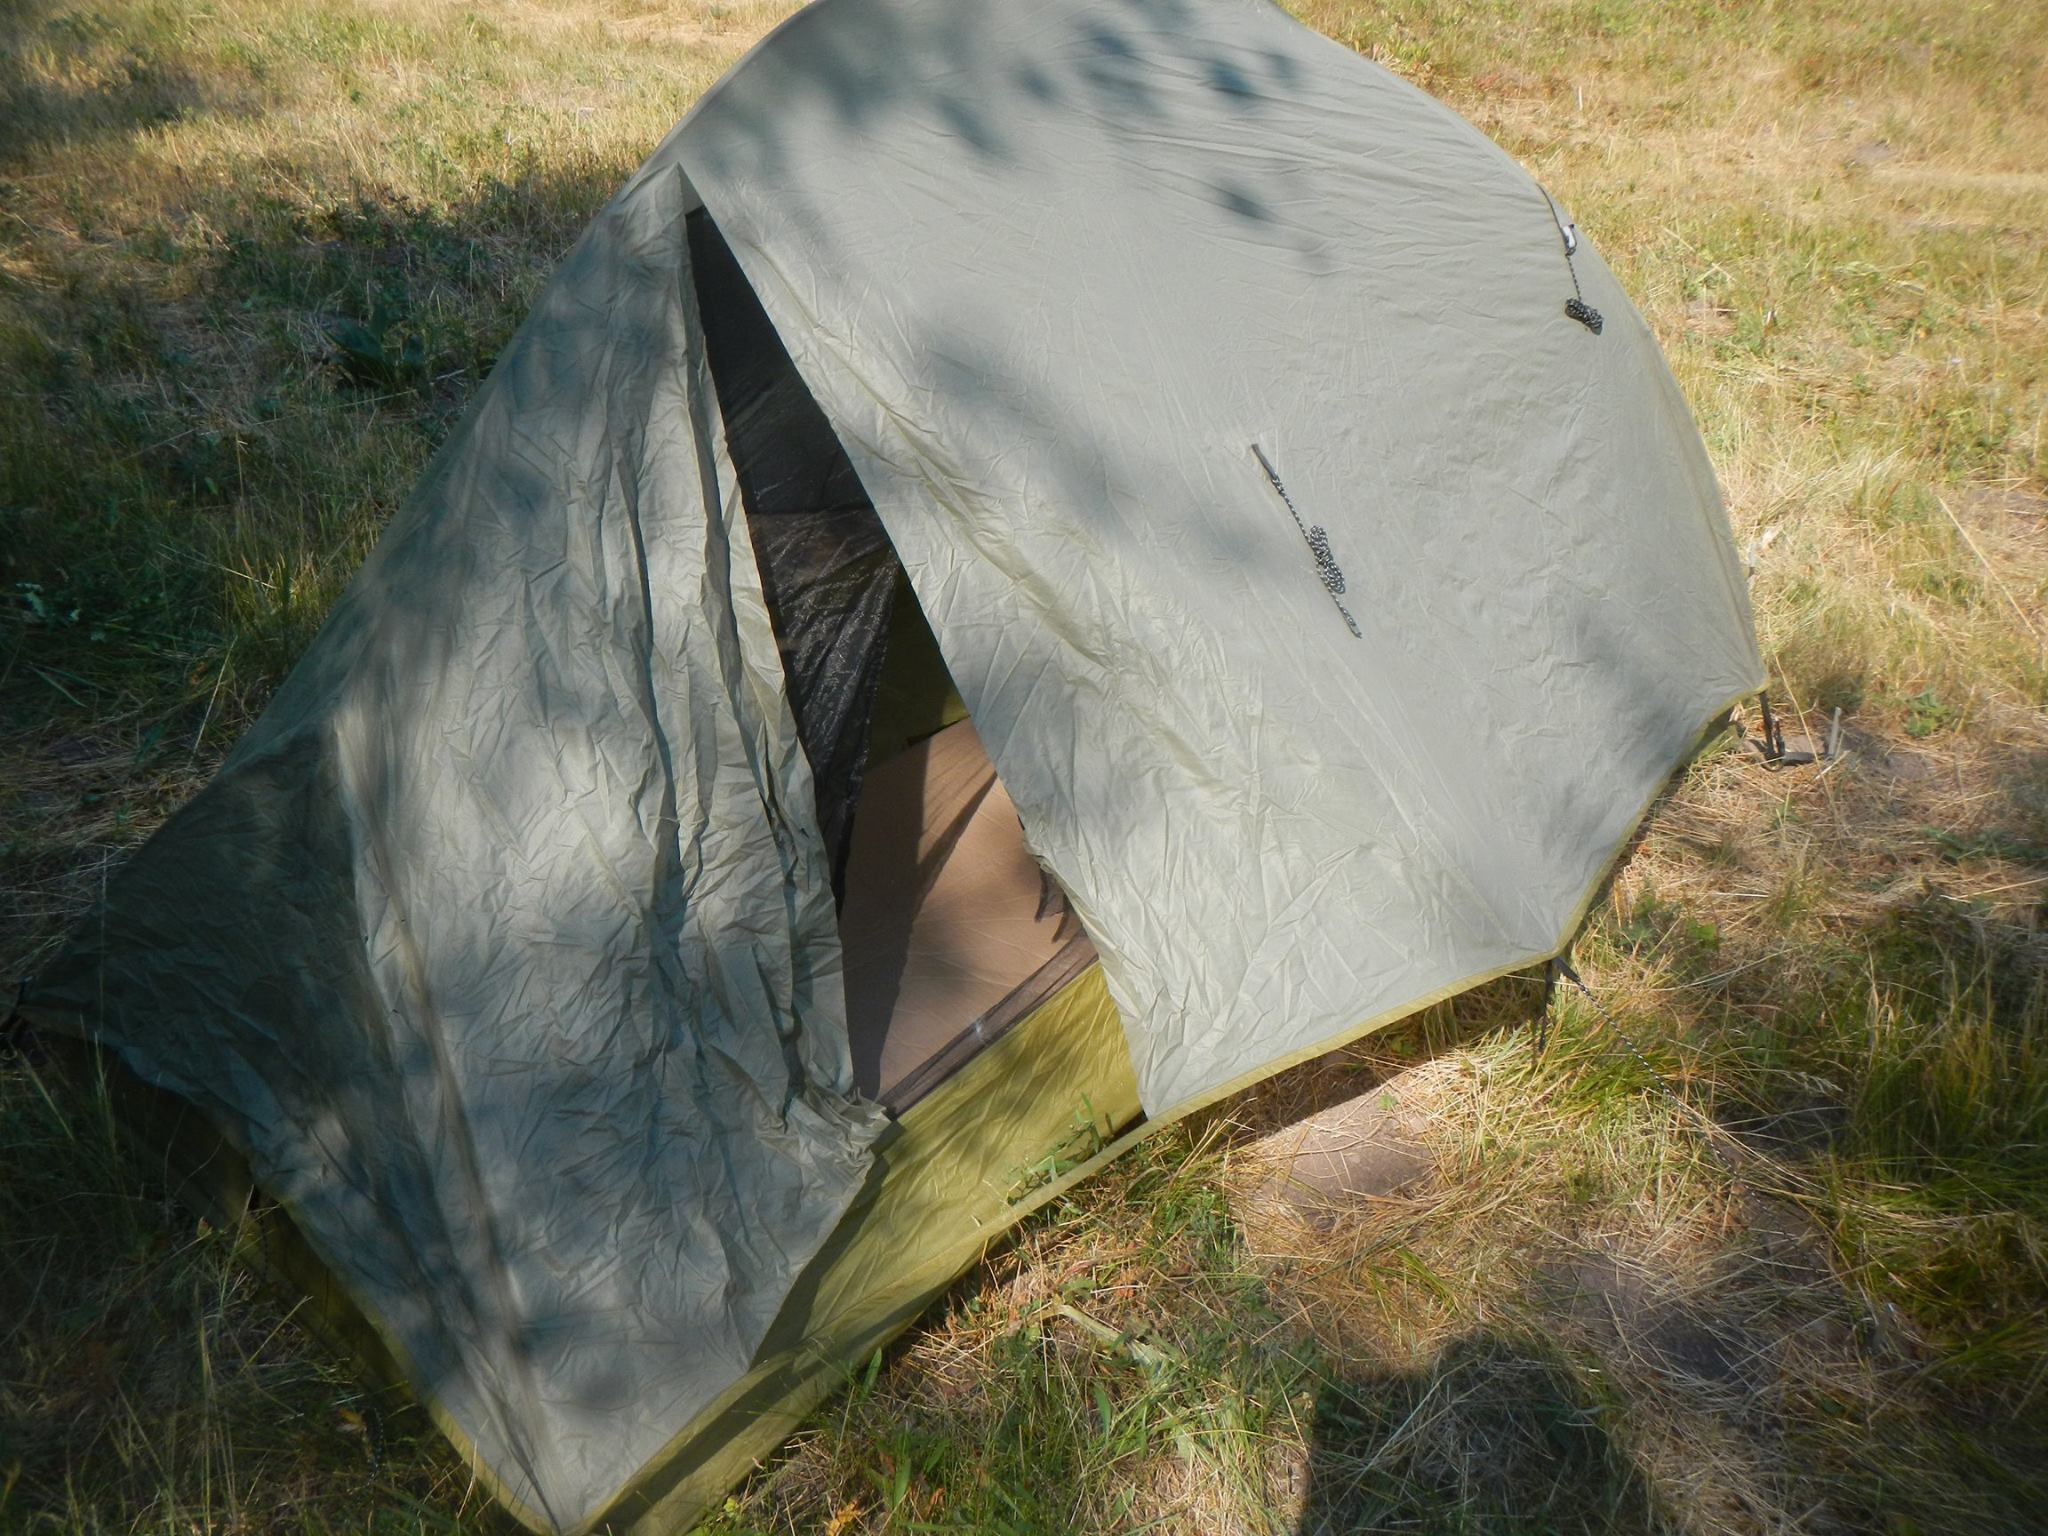 The post-bear tent & bears | The Wolverine Blog